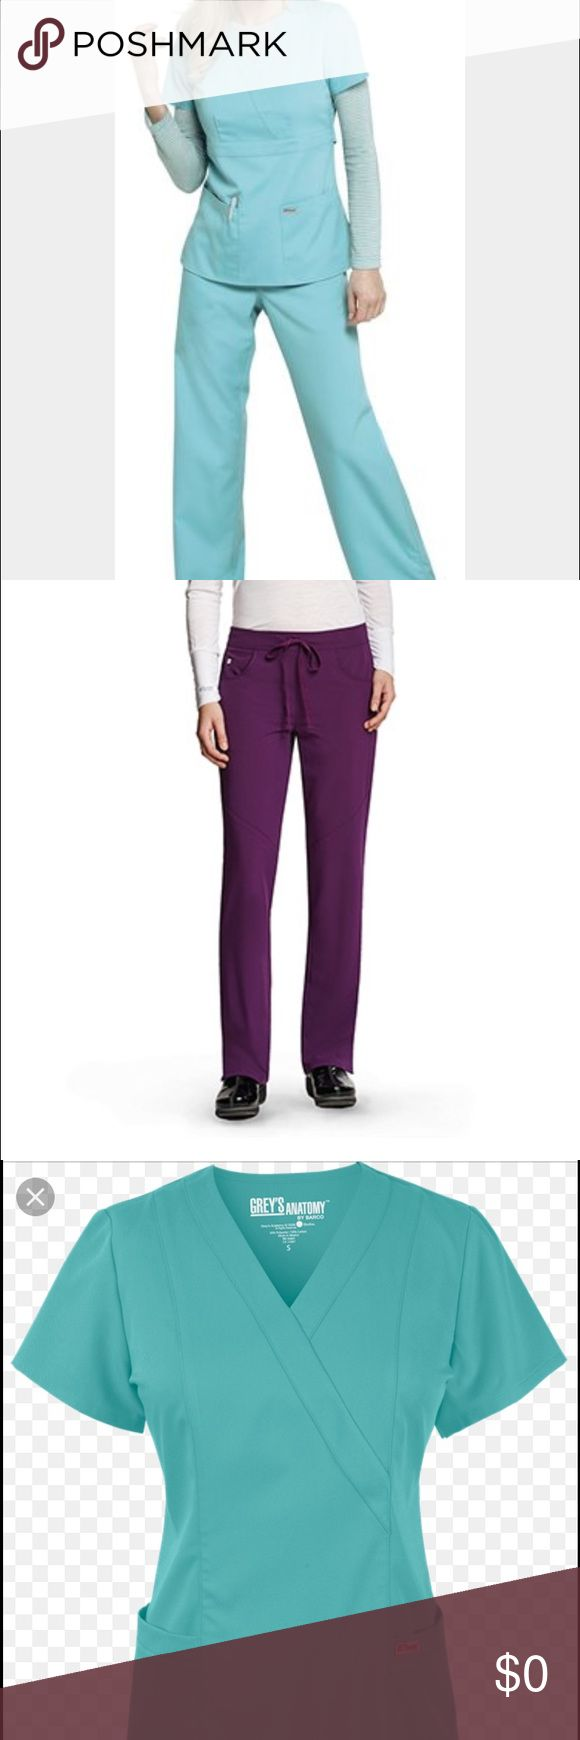 ISO NEED SCRUBS!!! Hi! I am in desperate need of some greys anatomy with cargo pocket pants in a size SMALL TALL, and some matching tops in a SMALL as well. Help a gal out! Thank you in advance. 😊😊 Pants